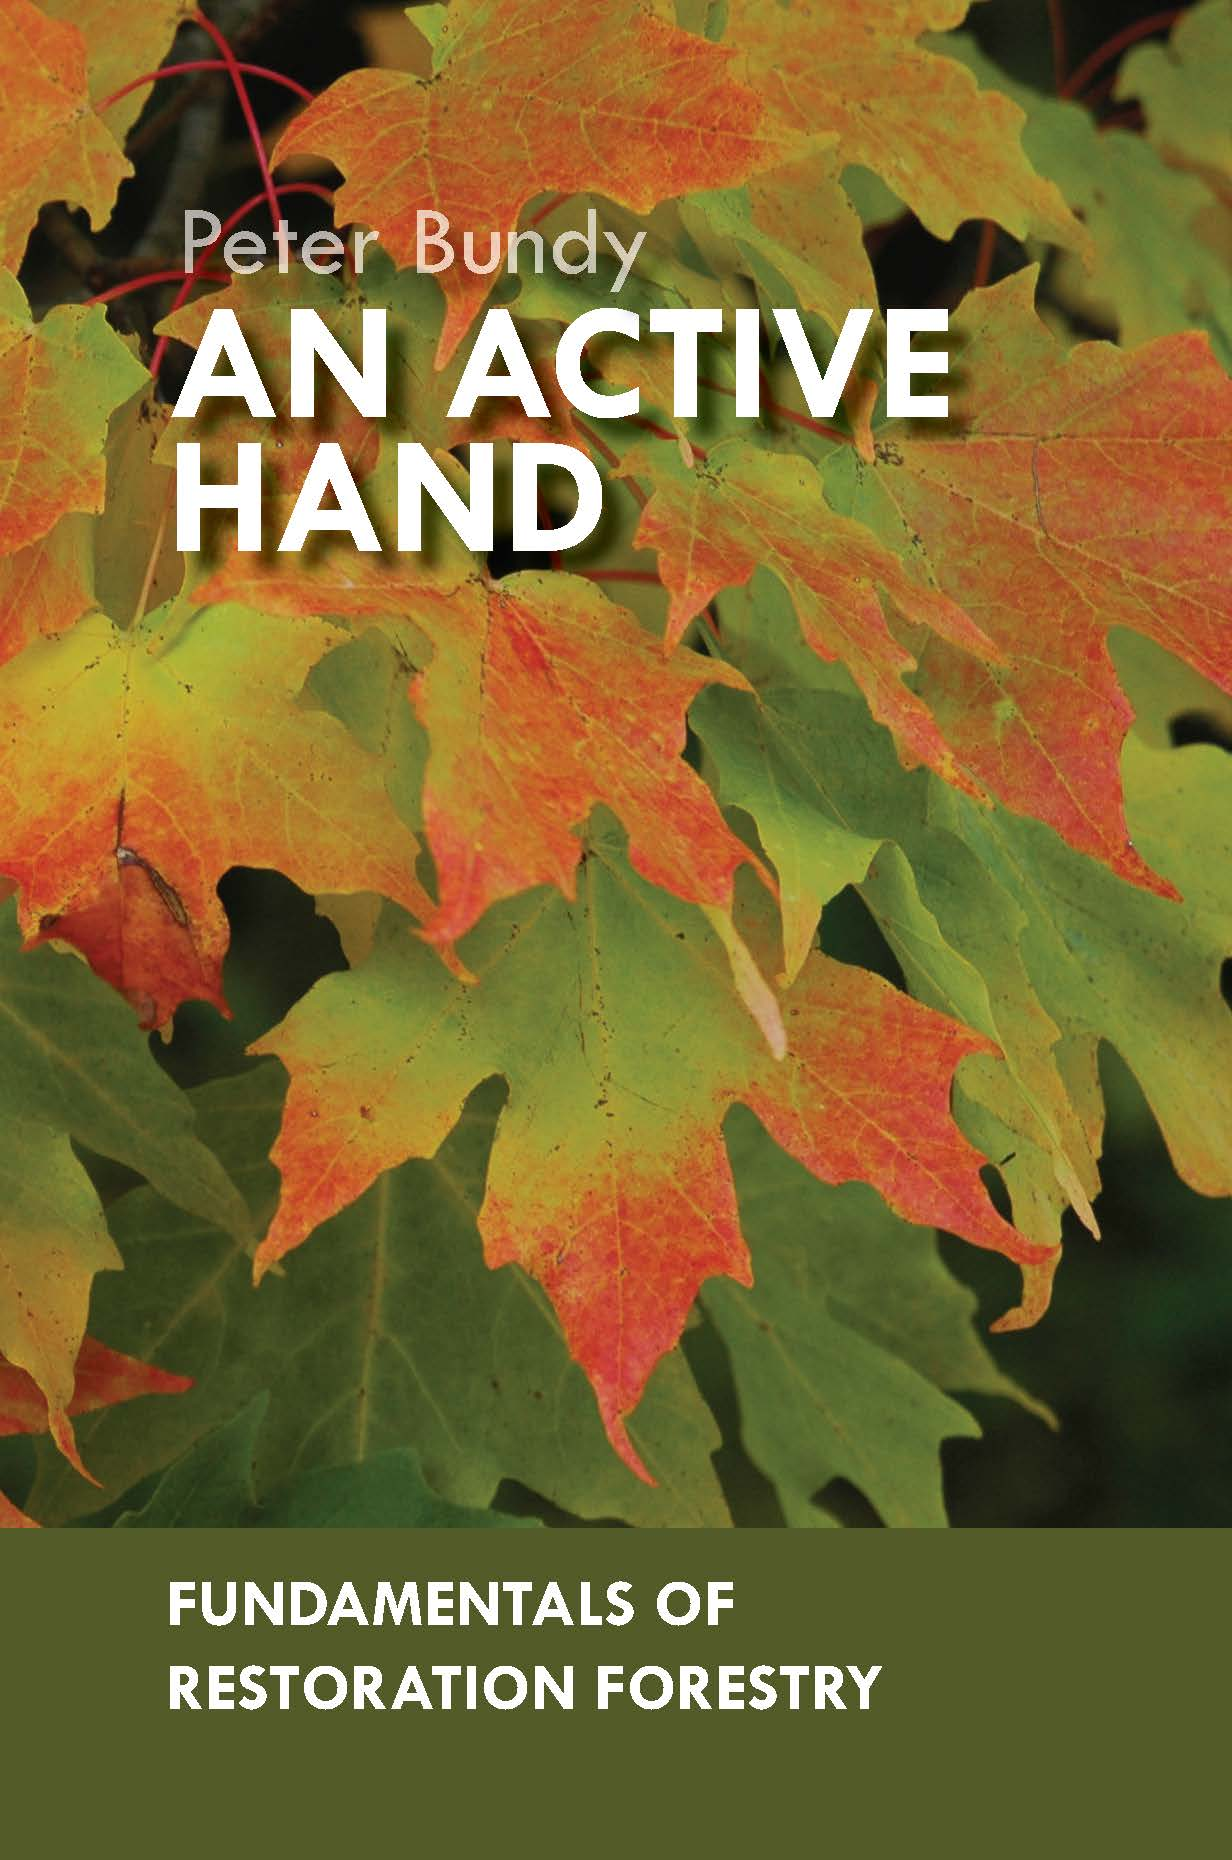 An Active Hand - Fundamentals of Restoration Forestry